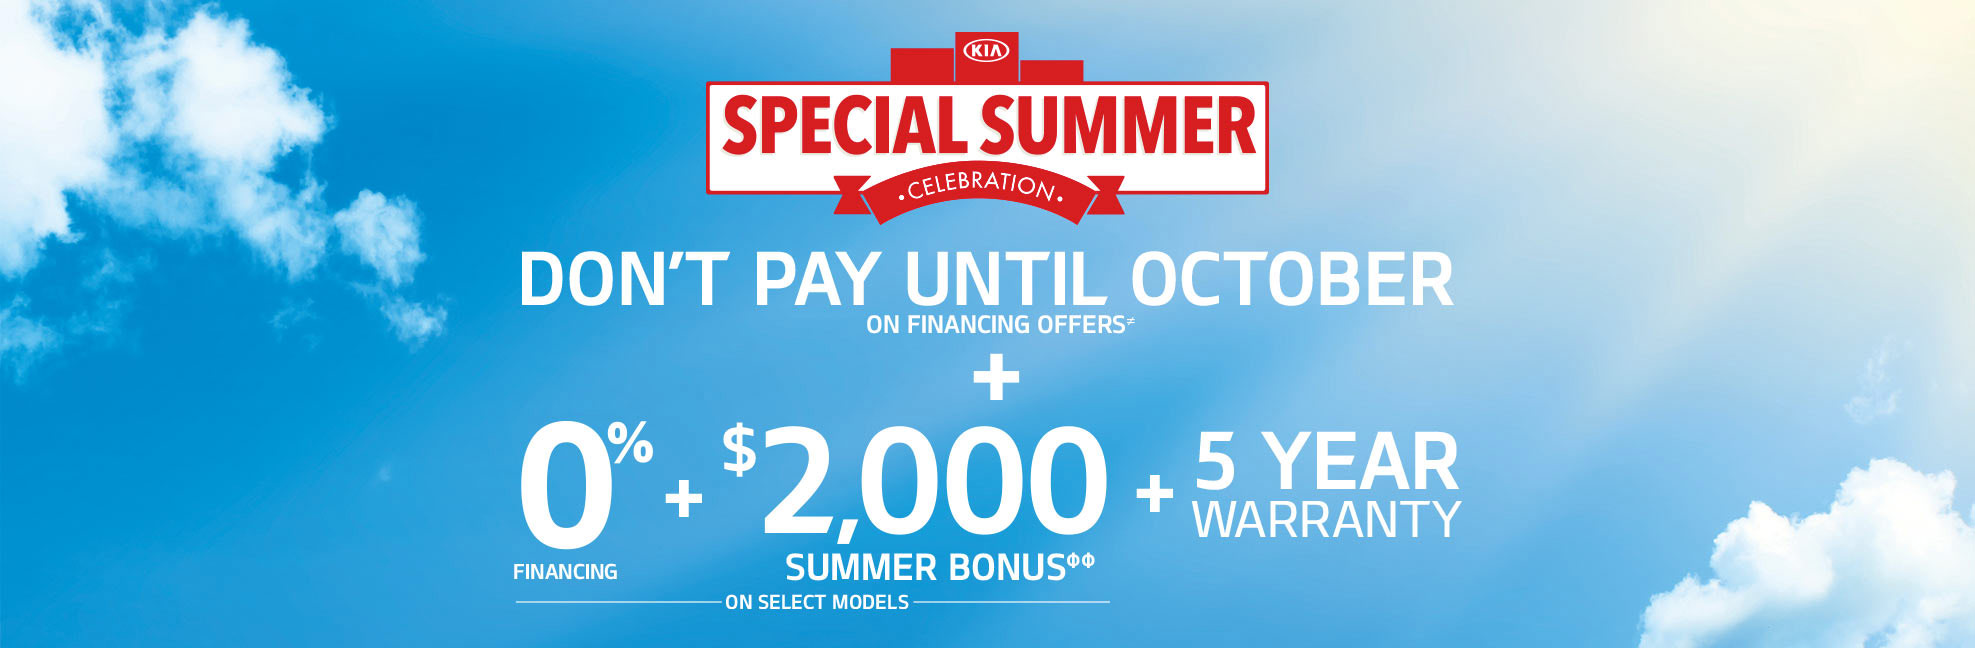 Special Summer Celebration - Don't Pay Until October Performance Kia